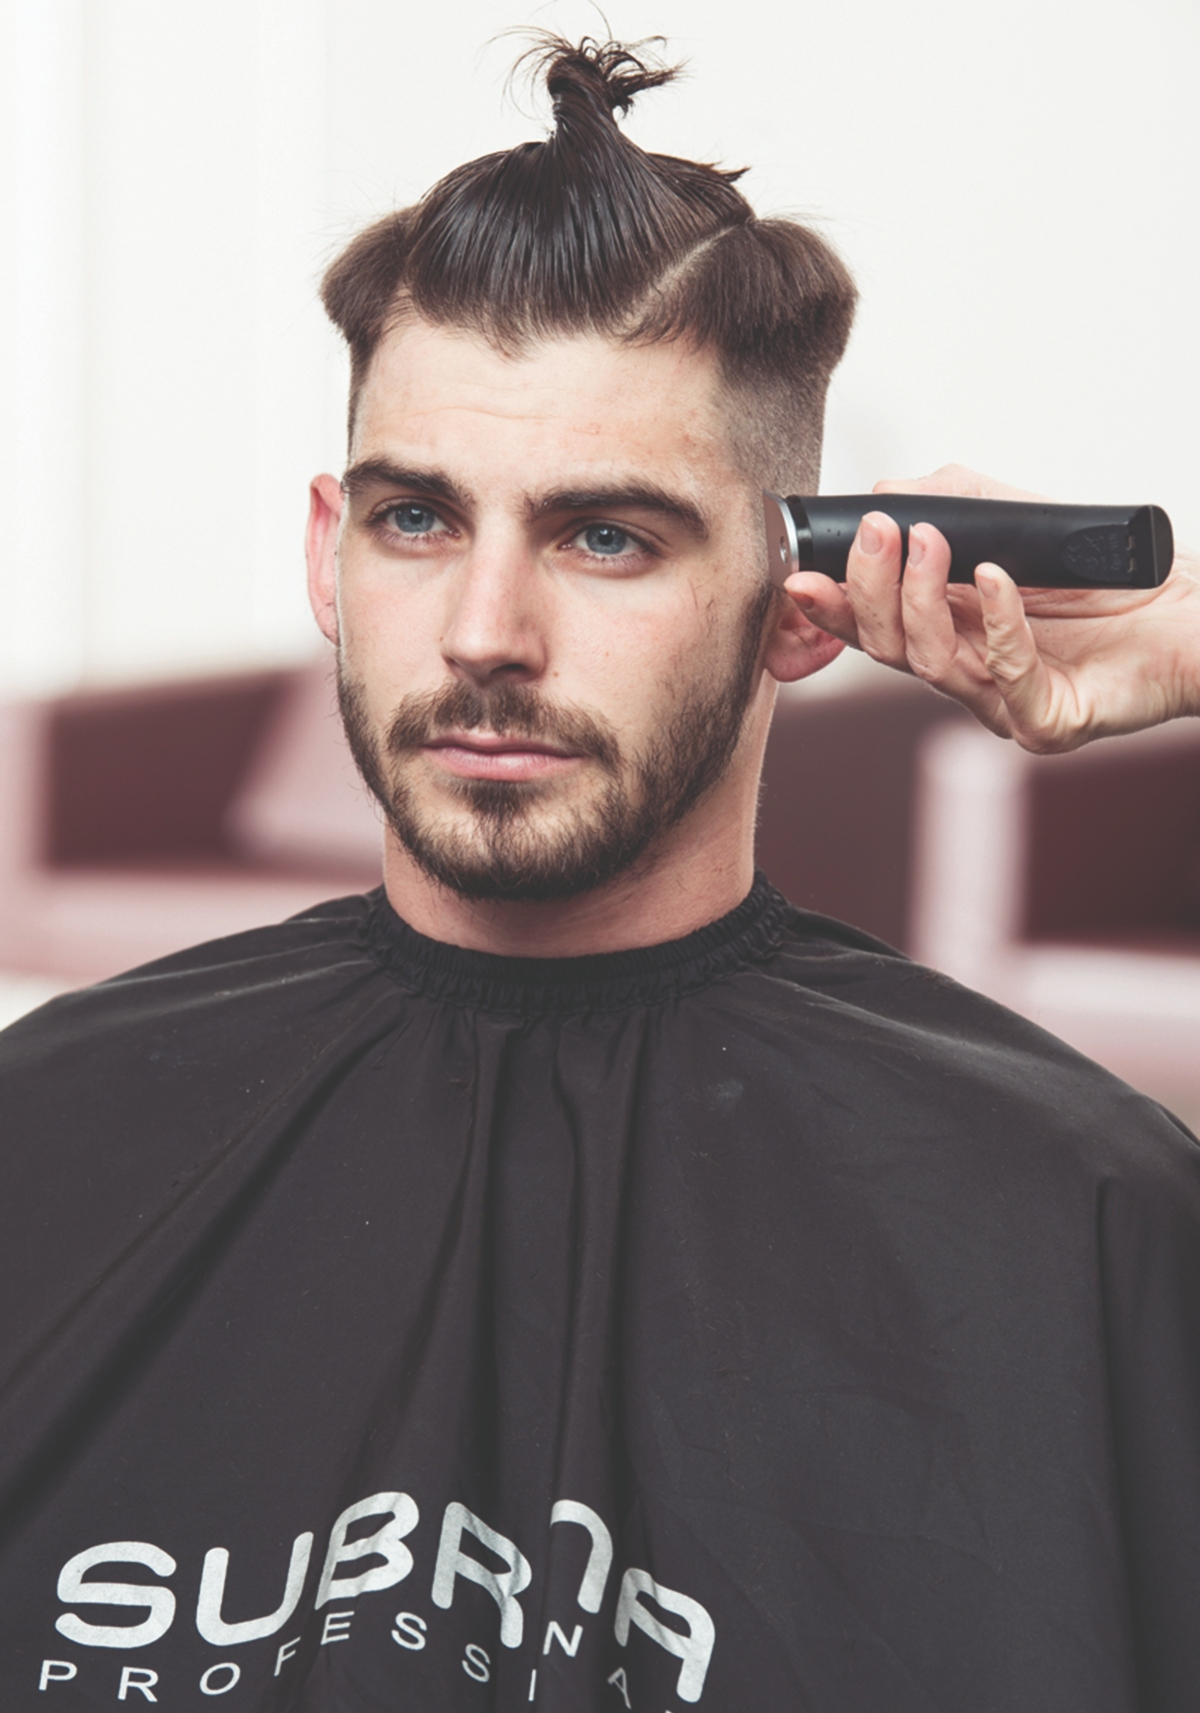 stella_trend_2019_barber_step6